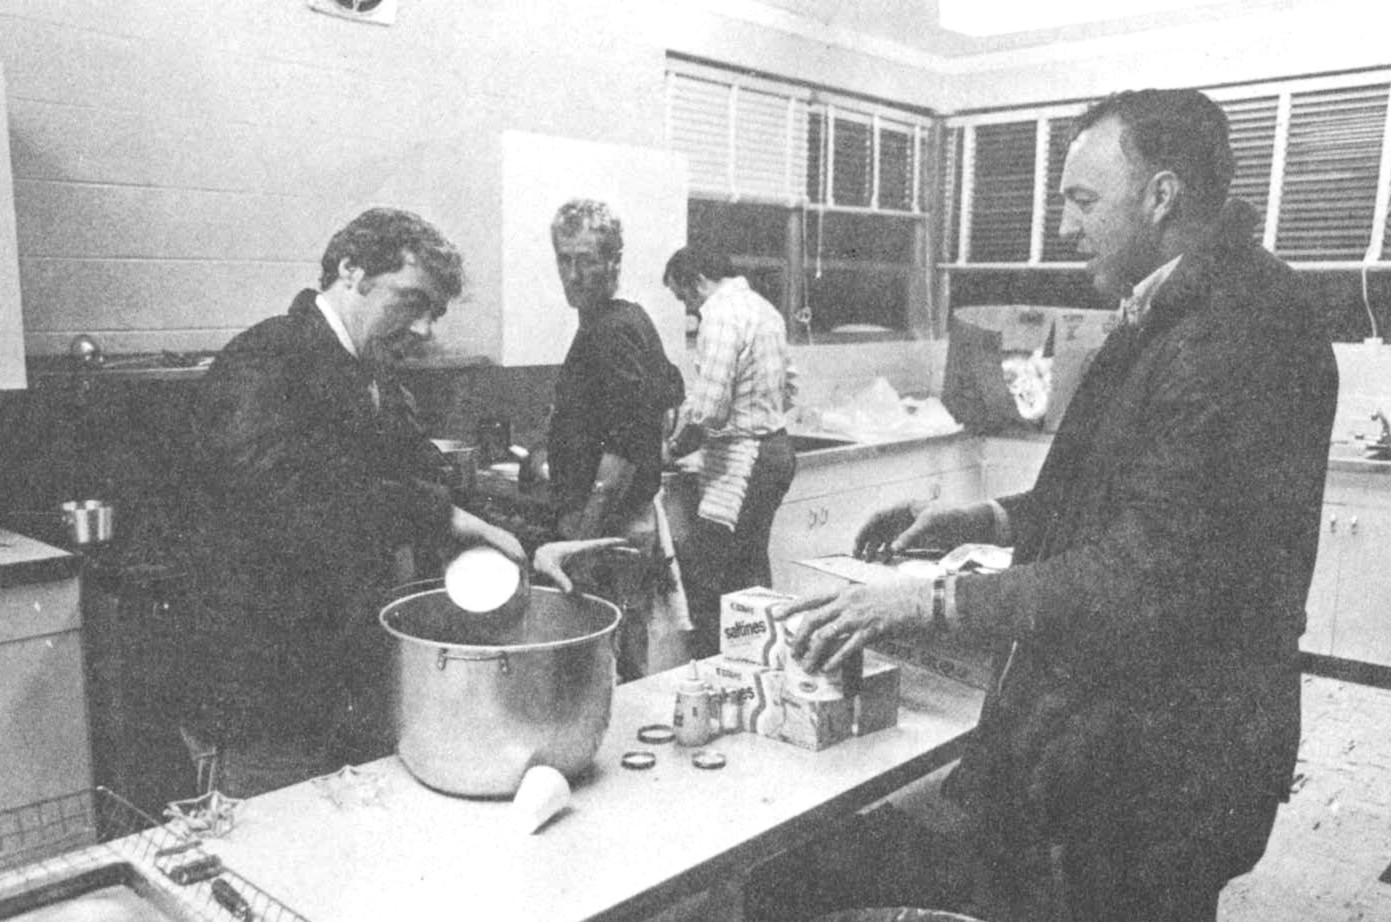 REFUGE FROM THE STORM: Mayor Joseph Walsh and Everett Carlow stir up beef stew at the Warwick Central Baptist Church shelter.